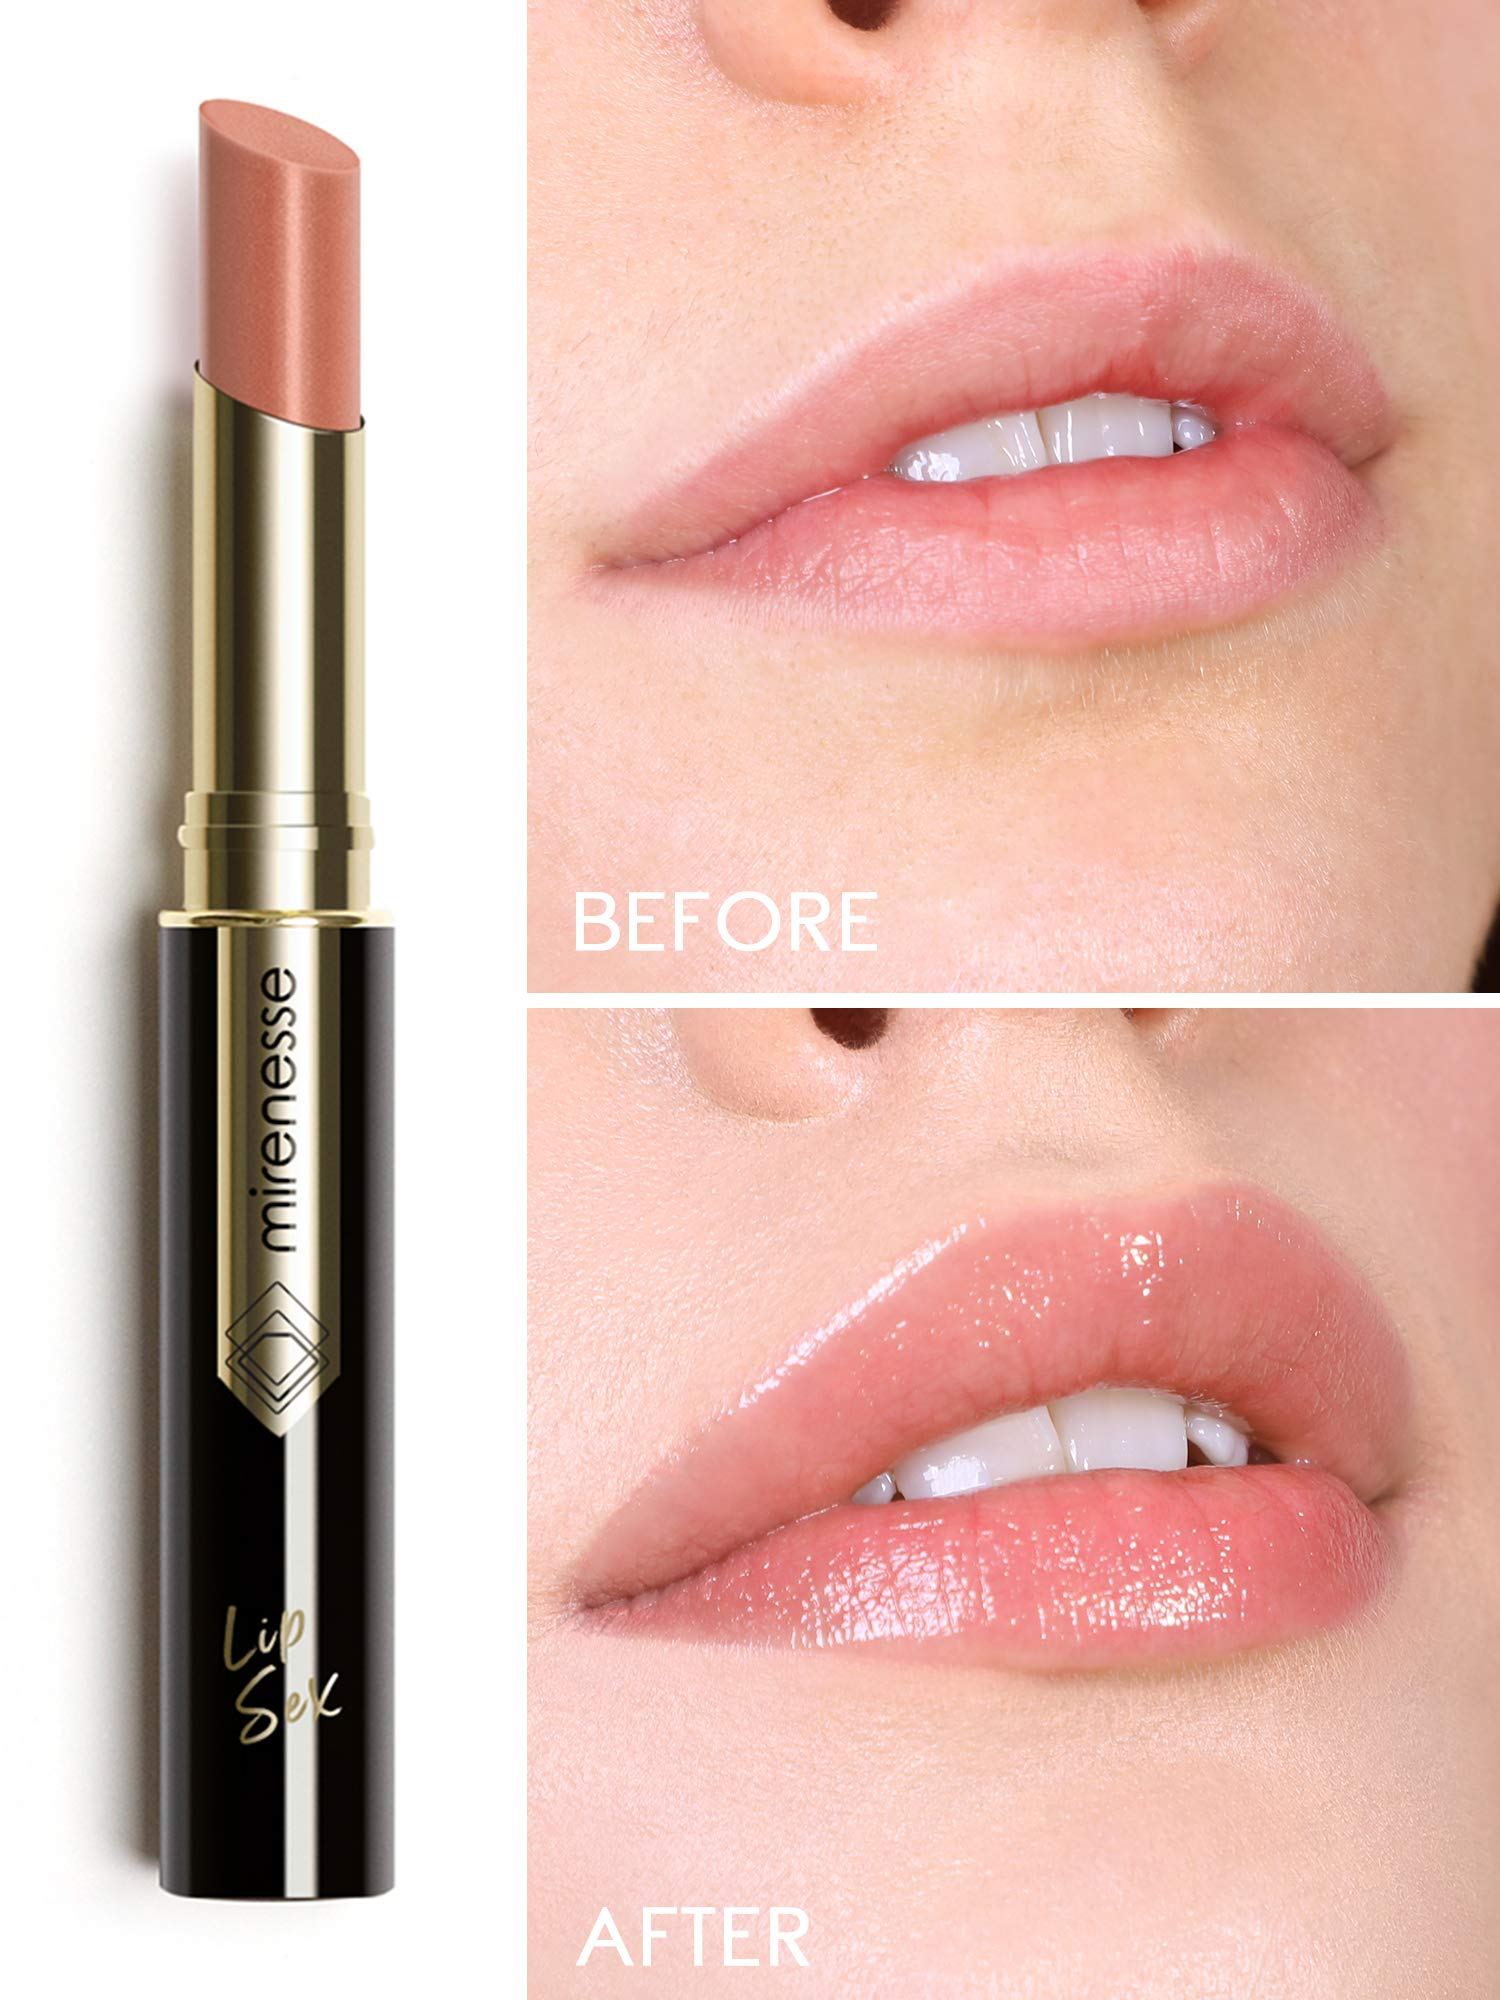 Mirenesse Lip Sex Plump & Fill Tint, Hydrating Plumping Lipstick Balm with Tint and Vitamin C + Vitamin E, Vegan and Toxin Free, 1 Raw Nude .07 oz